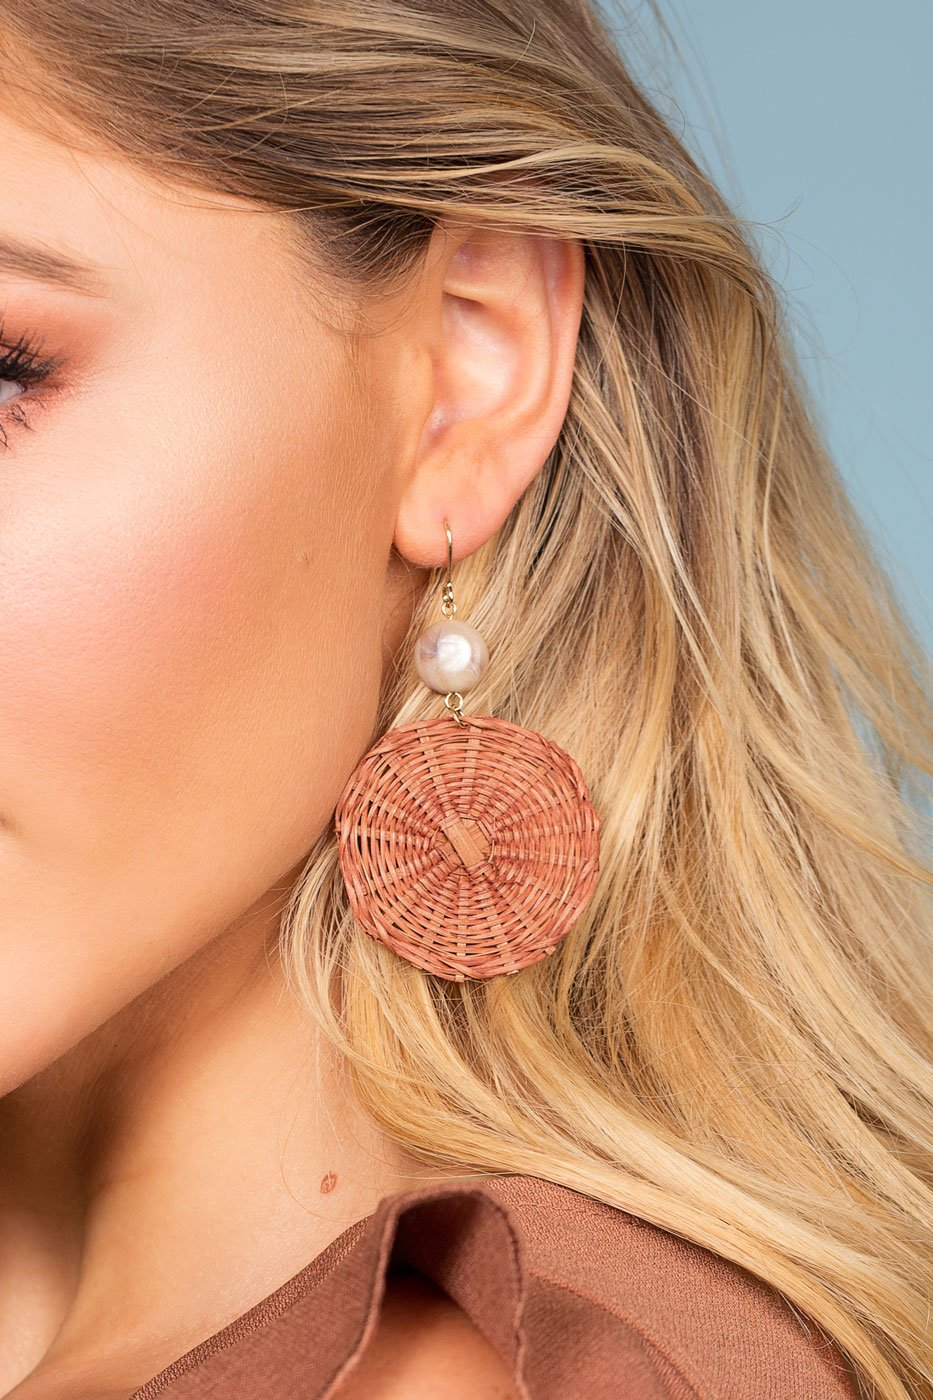 Jewelry - Kelli Earrings - Brick